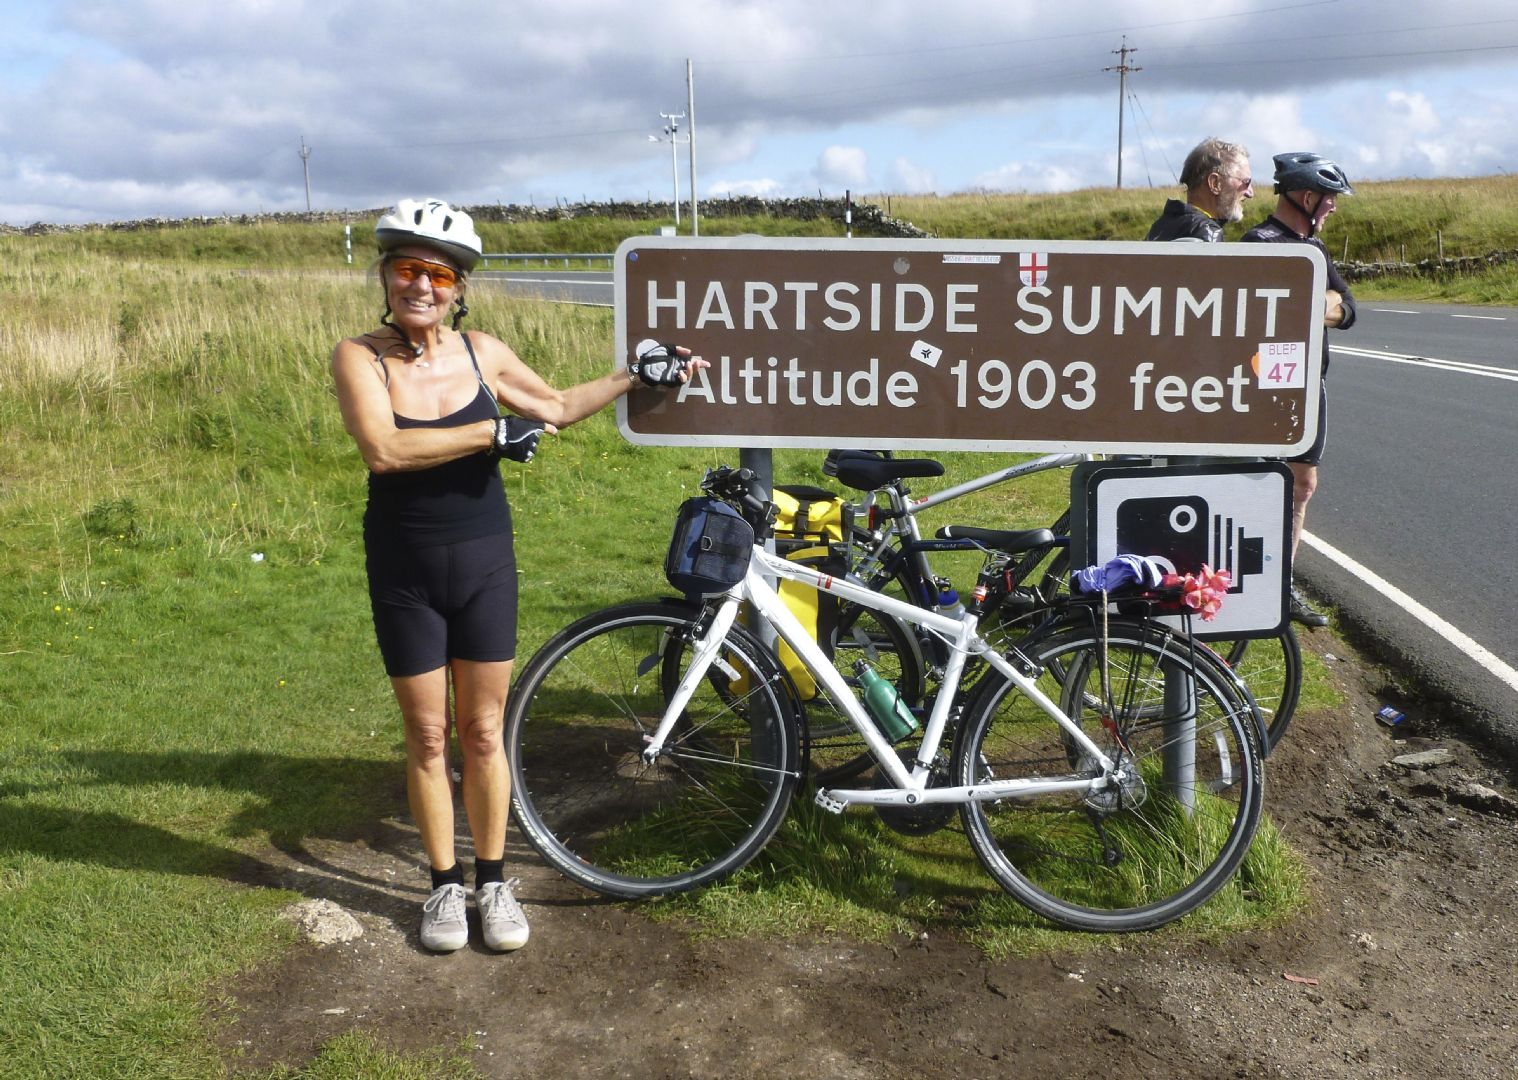 _Customer.36813.6976.jpg - UK - C2C - Coast to Coast 3 Days Cycling - Self-Guided Leisure Cycling Holiday - Leisure Cycling